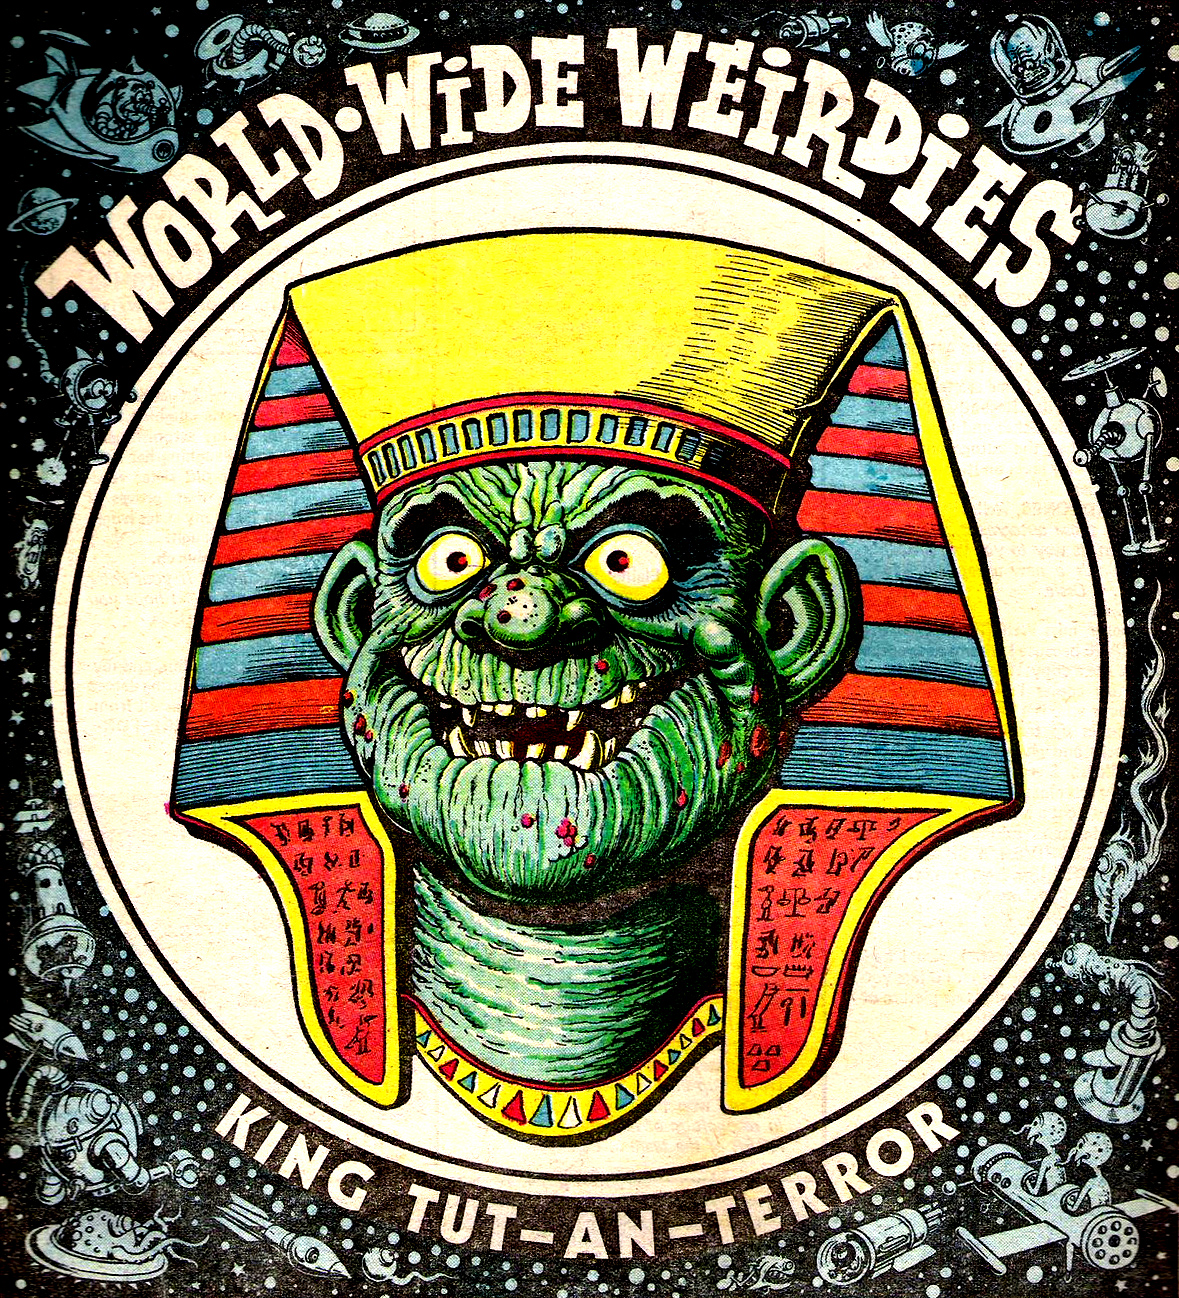 Ken Reid - World Wide Weirdies 70